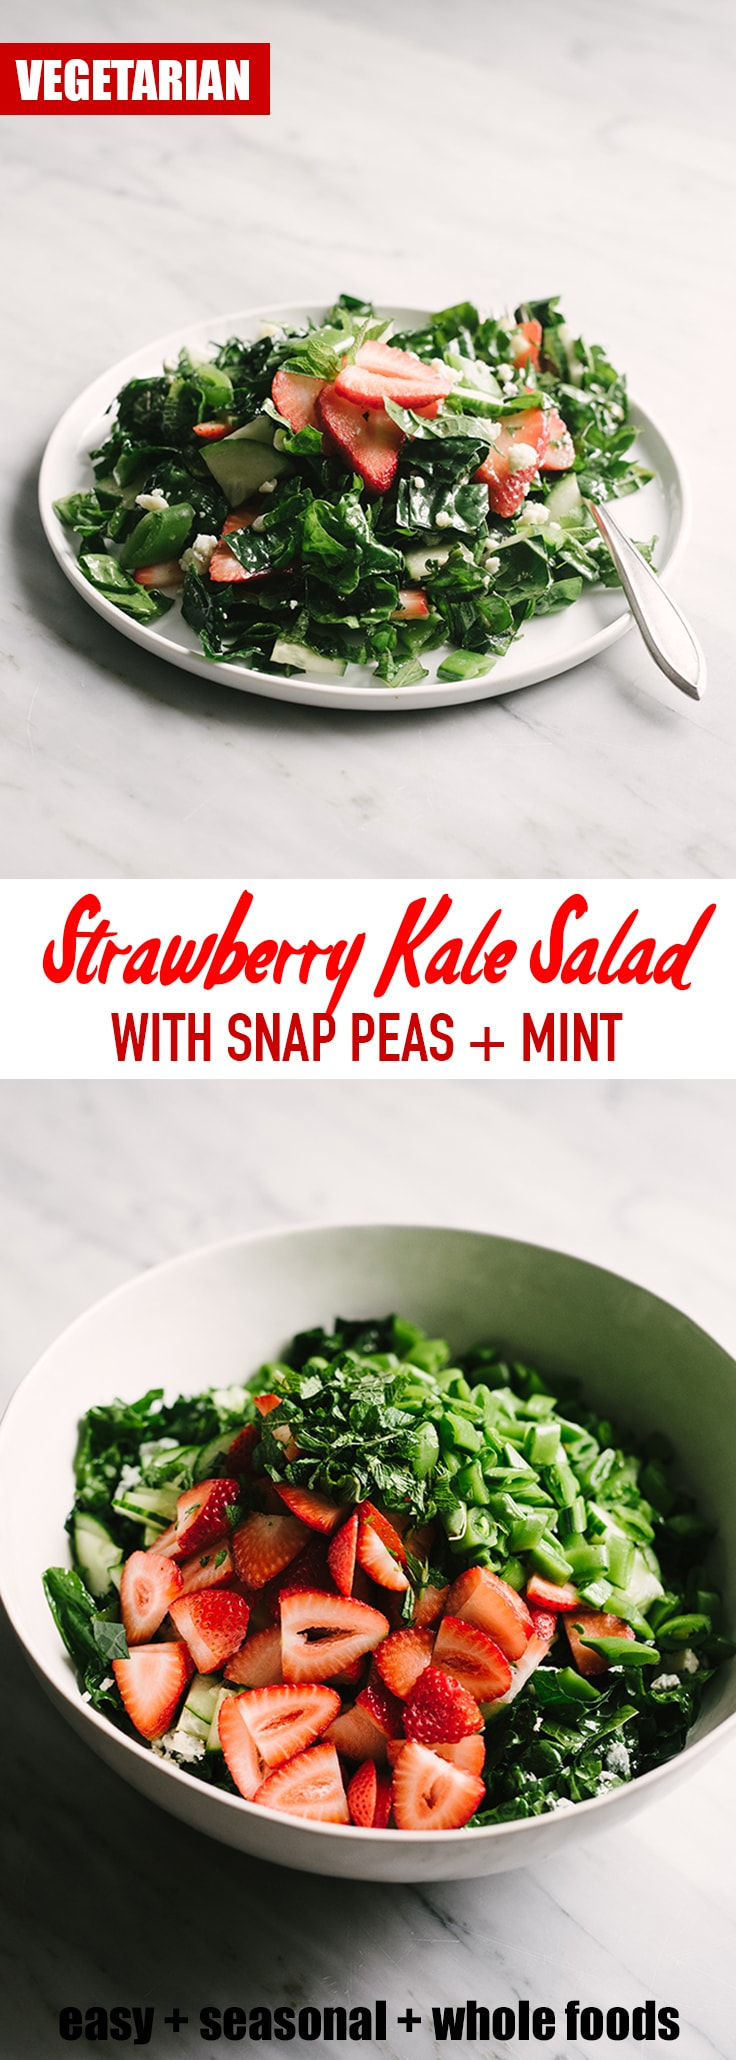 This strawberry kale salad is seasonal, nutritious, and refreshing. Make it meal by adding chicken or steak. Paleo, Whole 30, and vegan friendly. #salad #vegetarian #whole30 #spring #kale #strawberries